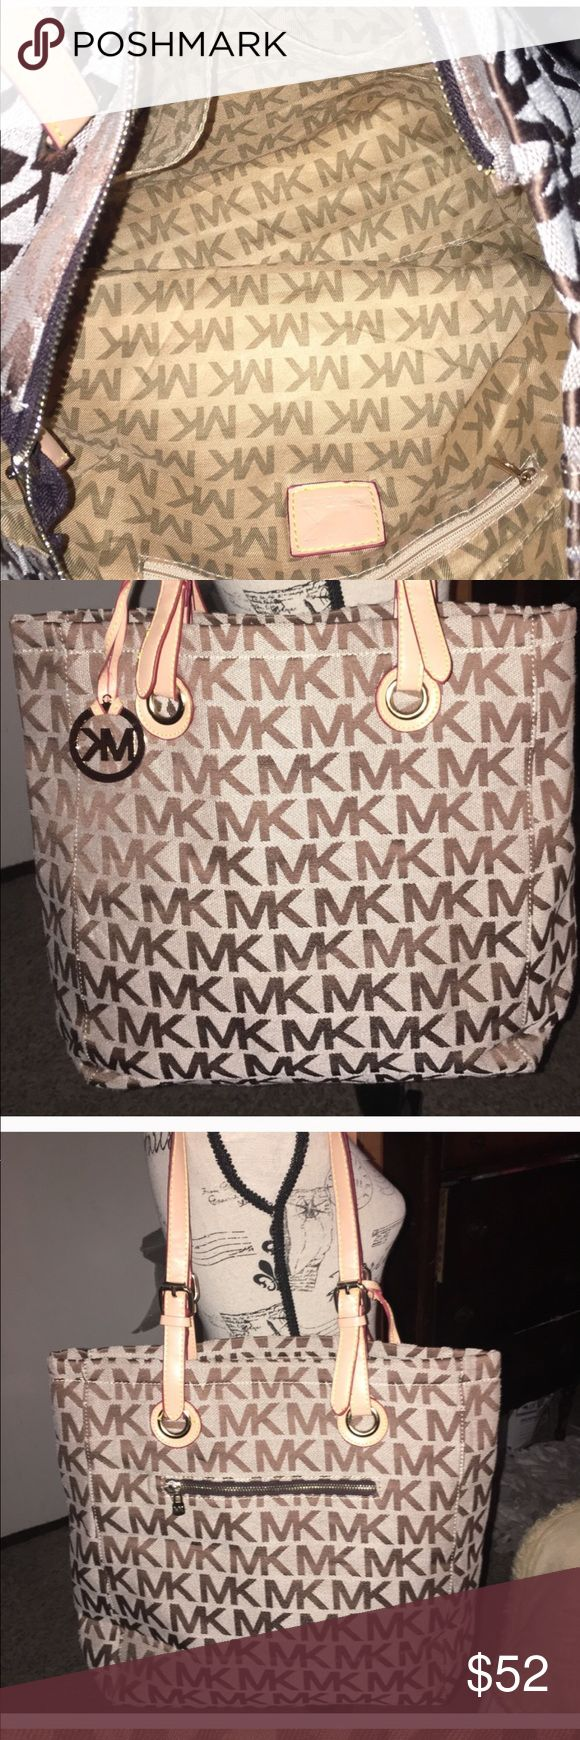 Designer Inspired Bag Tote Please Ask Questions Love